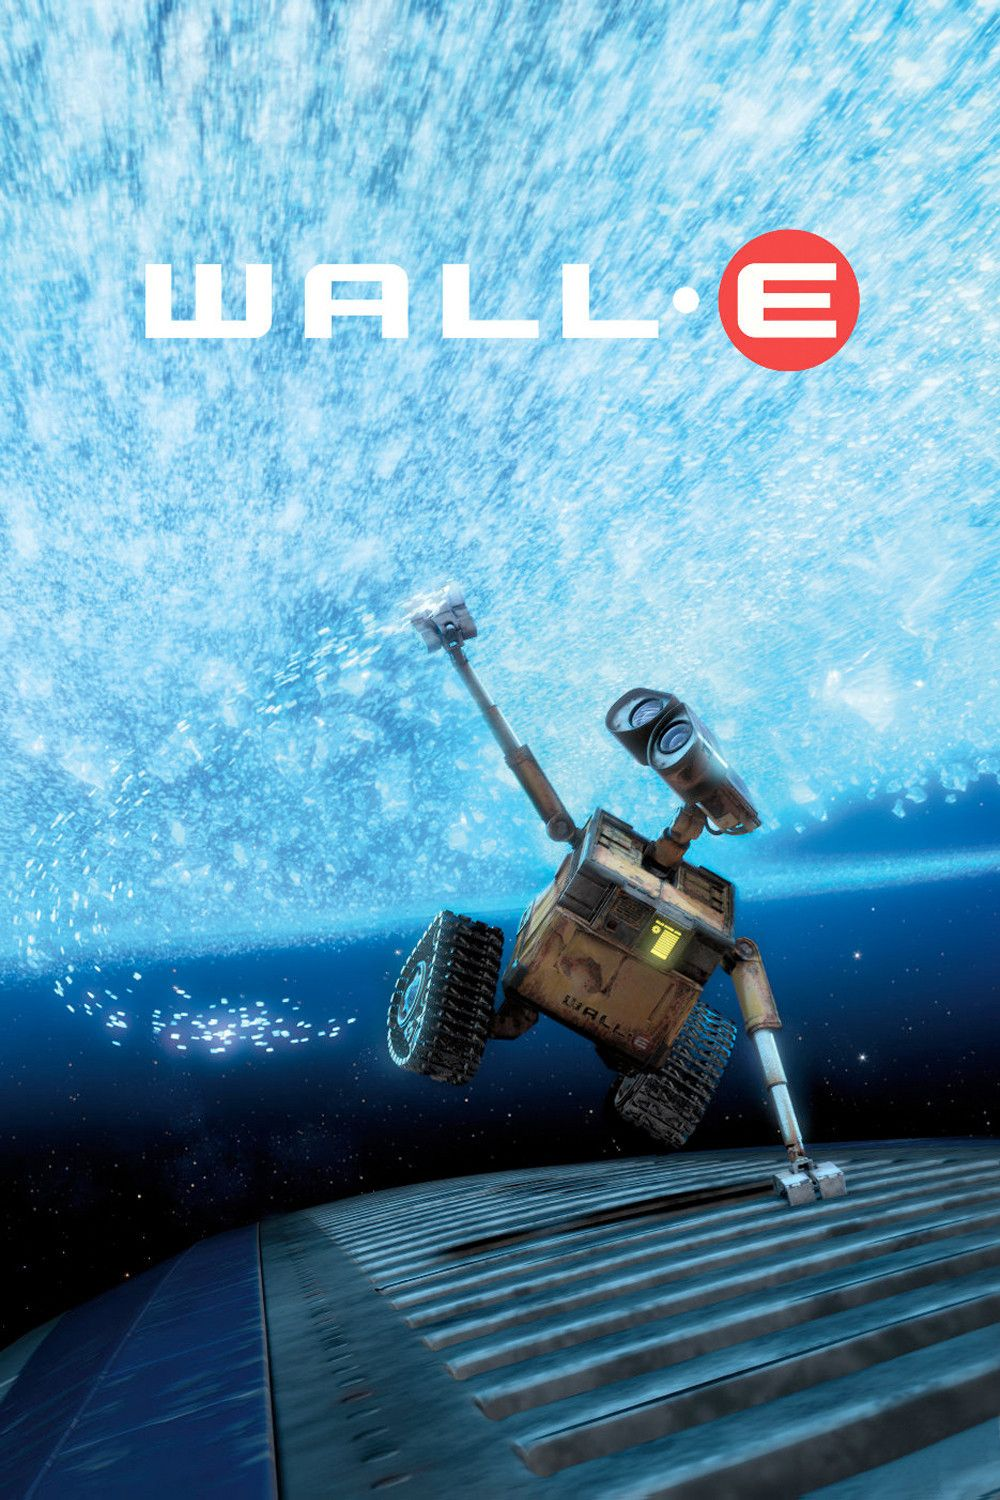 Wall E 2008 Imdb Animated Movies Disney Movies Wall E